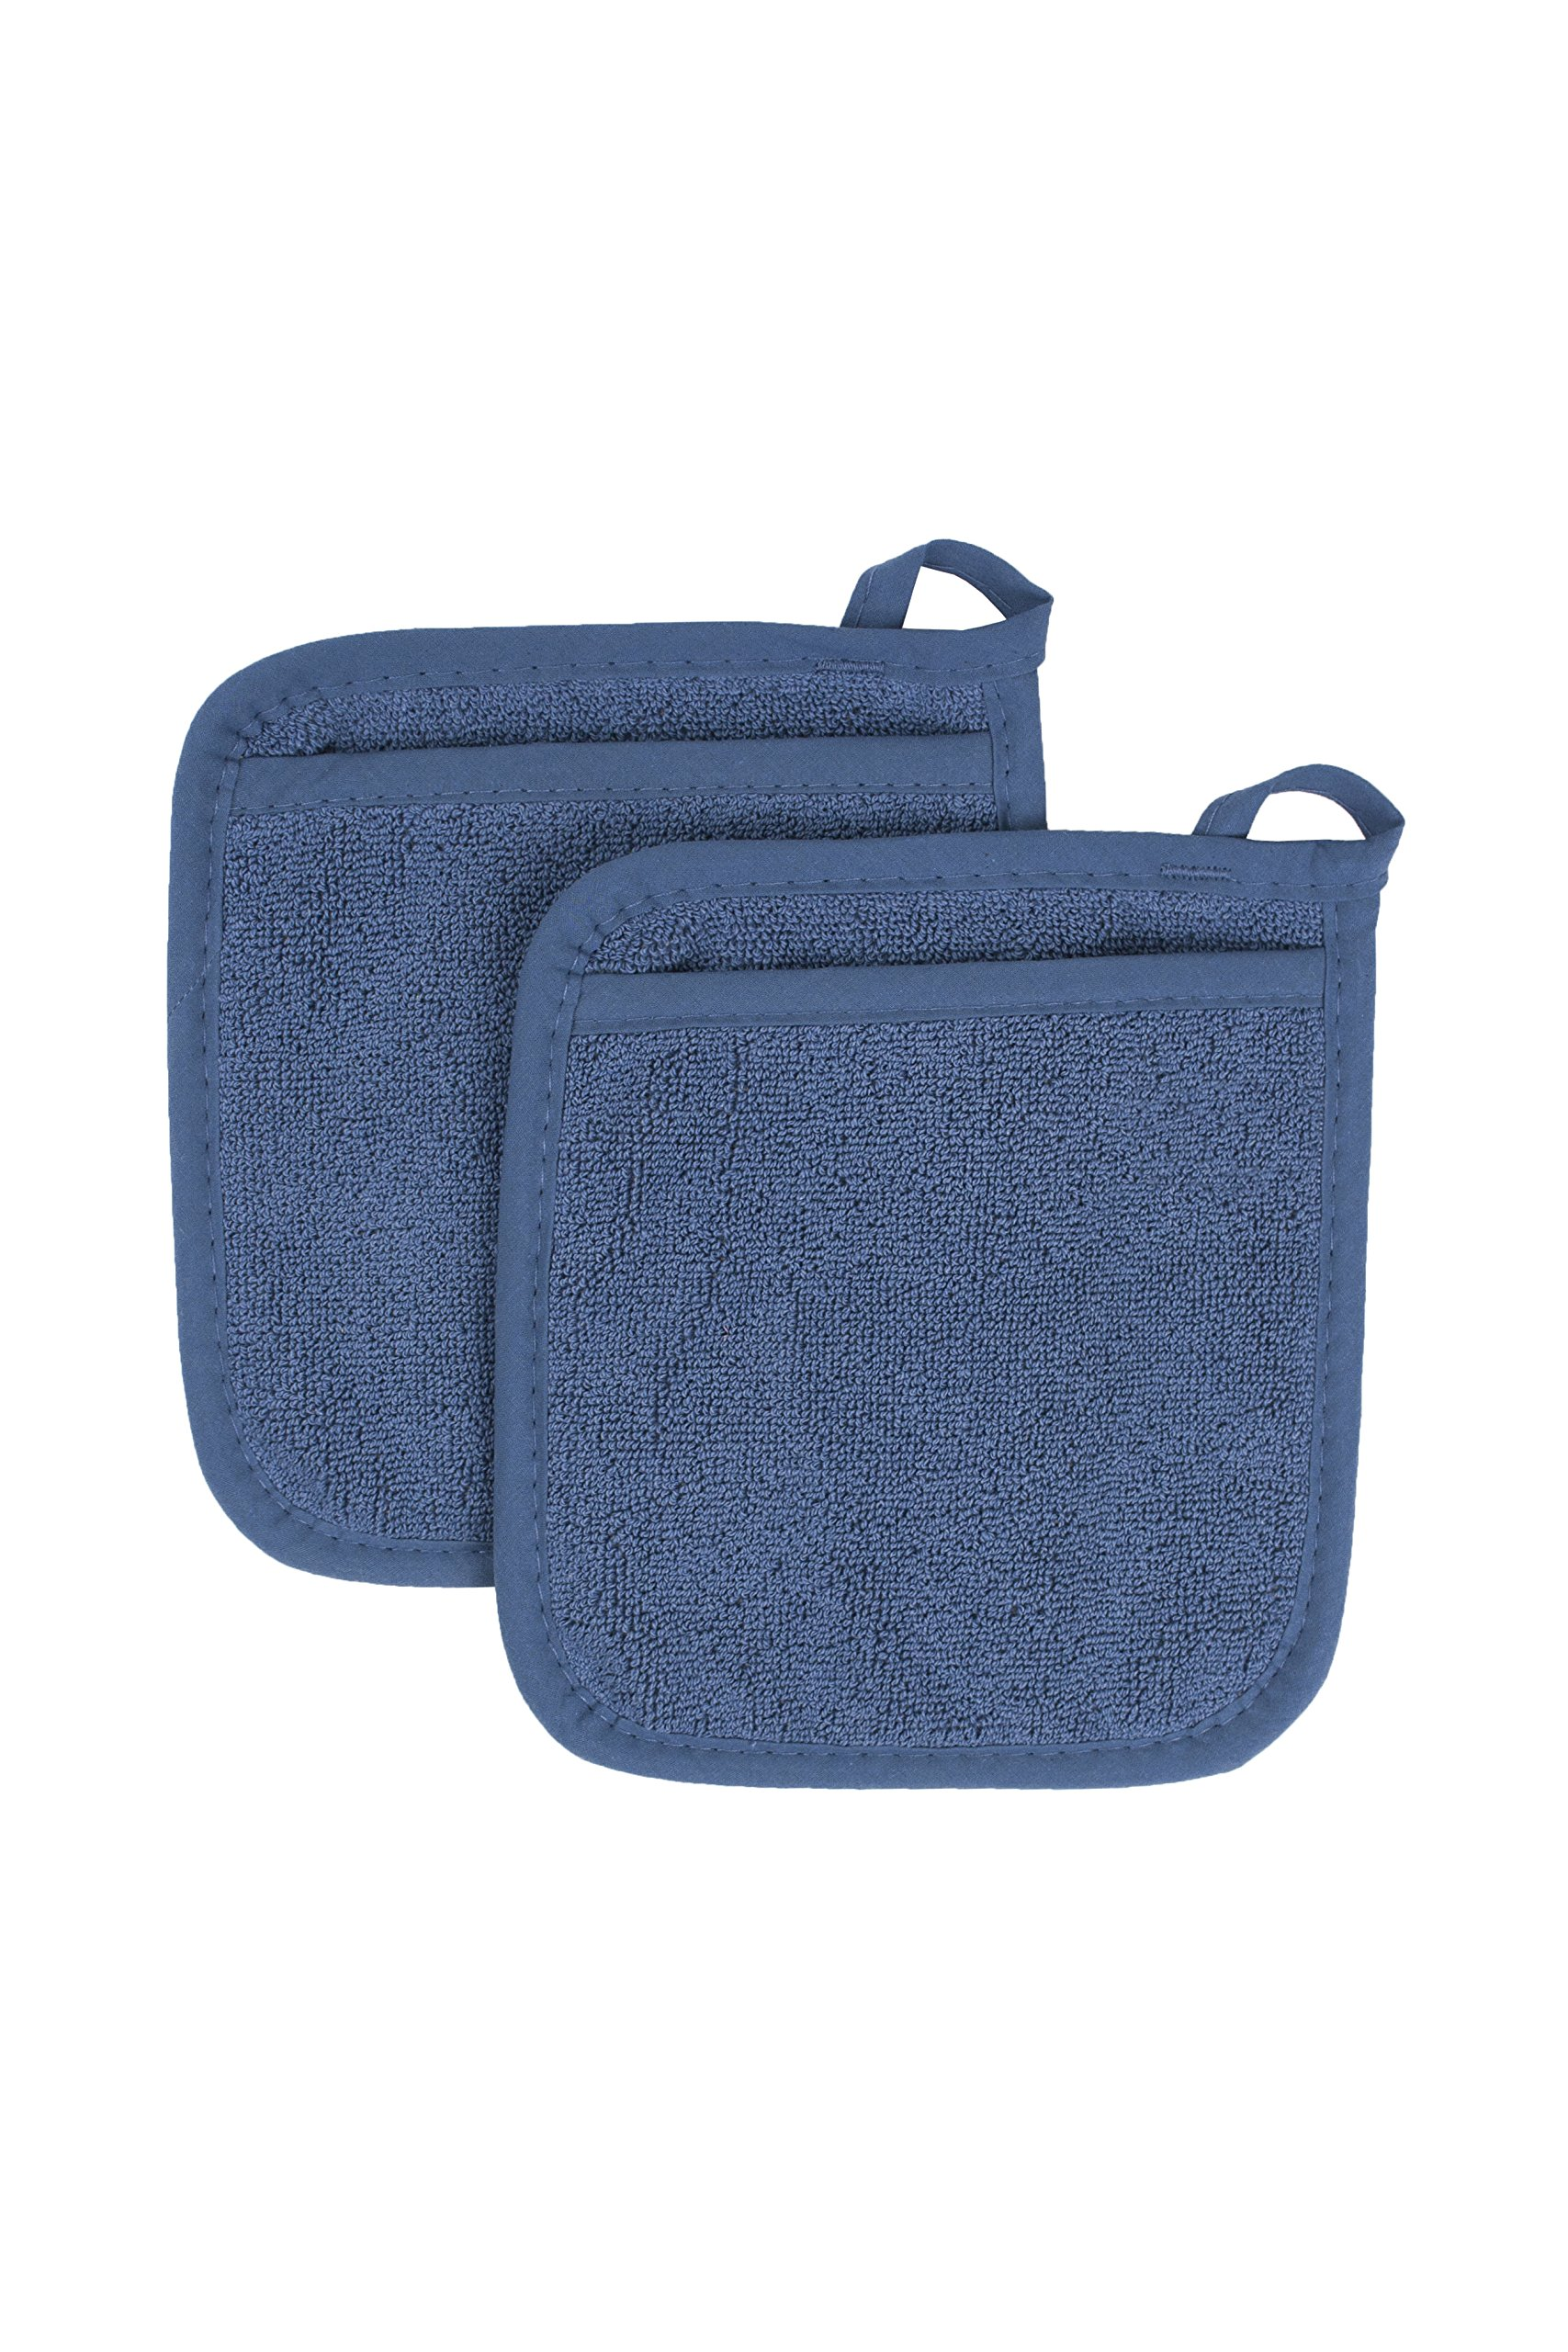 Ritz Royale Collection 100% Cotton Terry Cloth Pocket Mitt Set, Dual-Function Hot Pad / Pot Holder, 2-Piece, Federal Blue